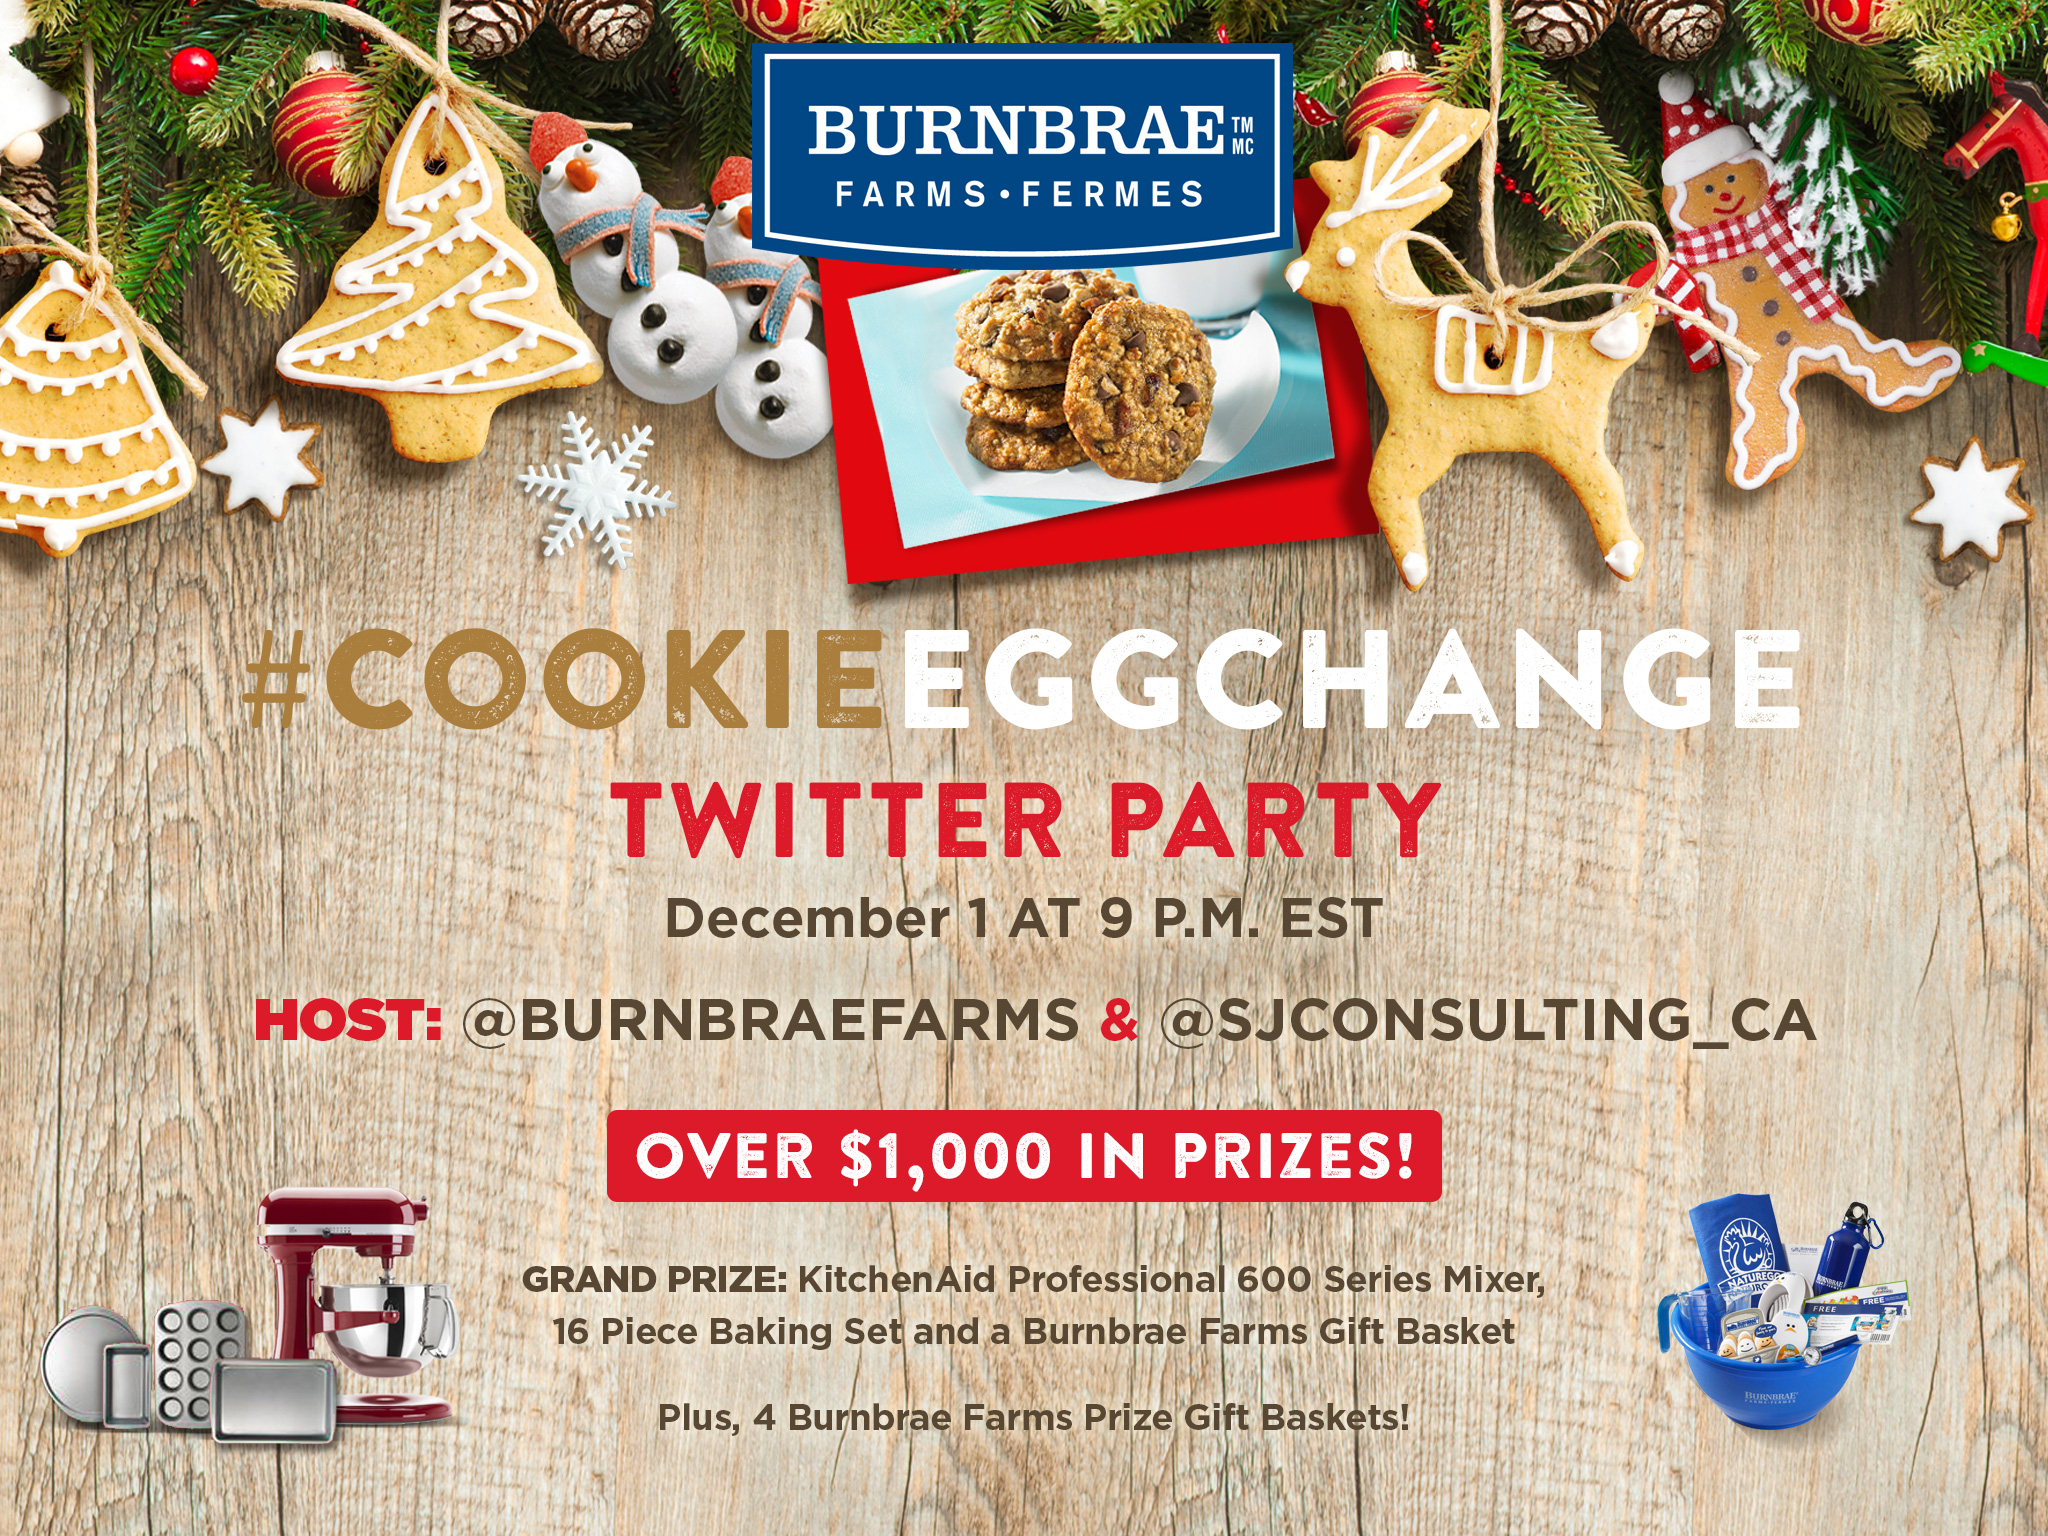 cookieeggchange_twitter_party